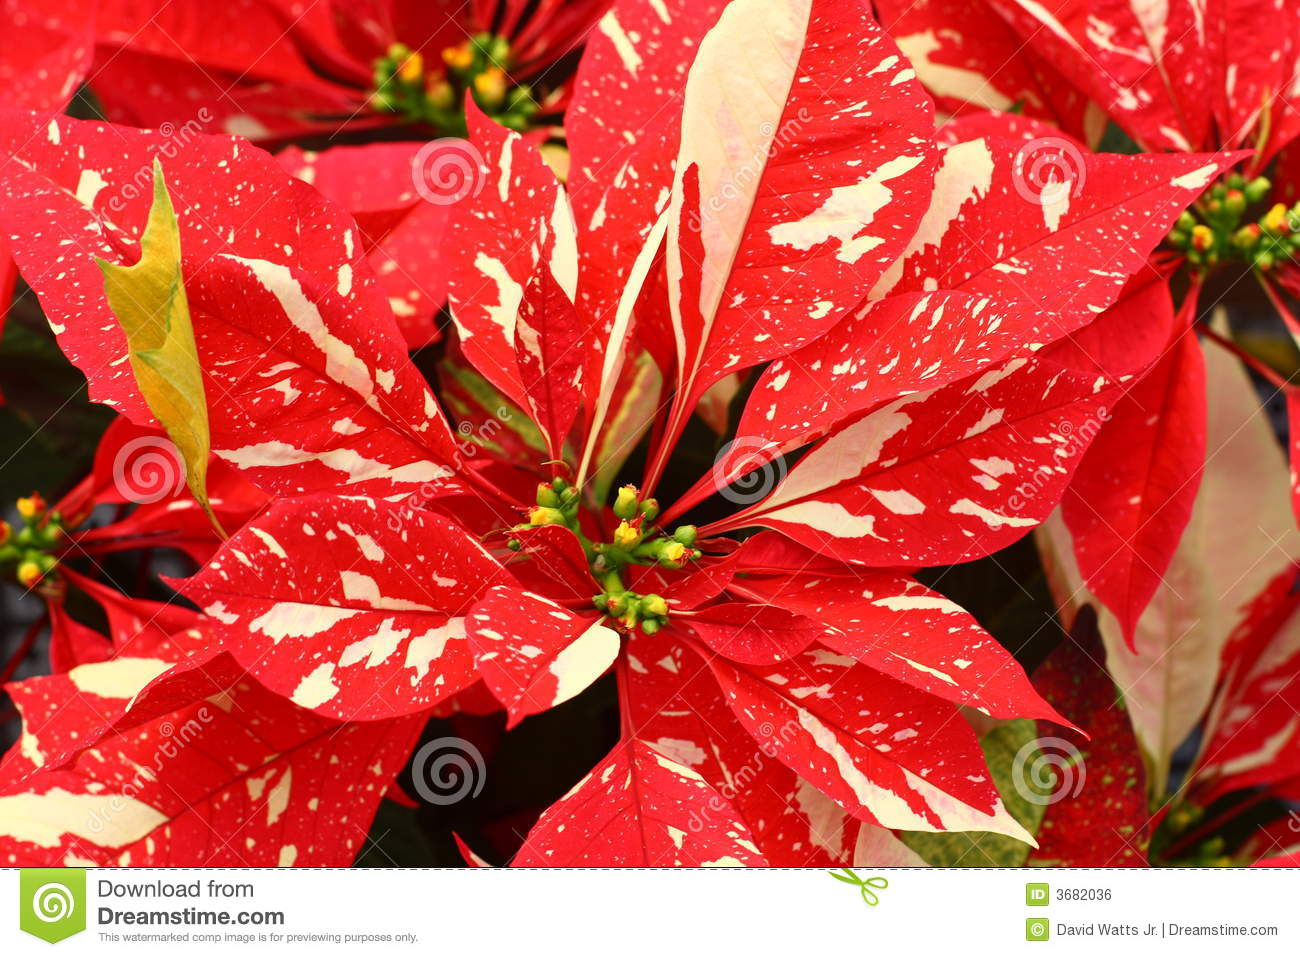 Stunning Marbled Poinsettia Flowers